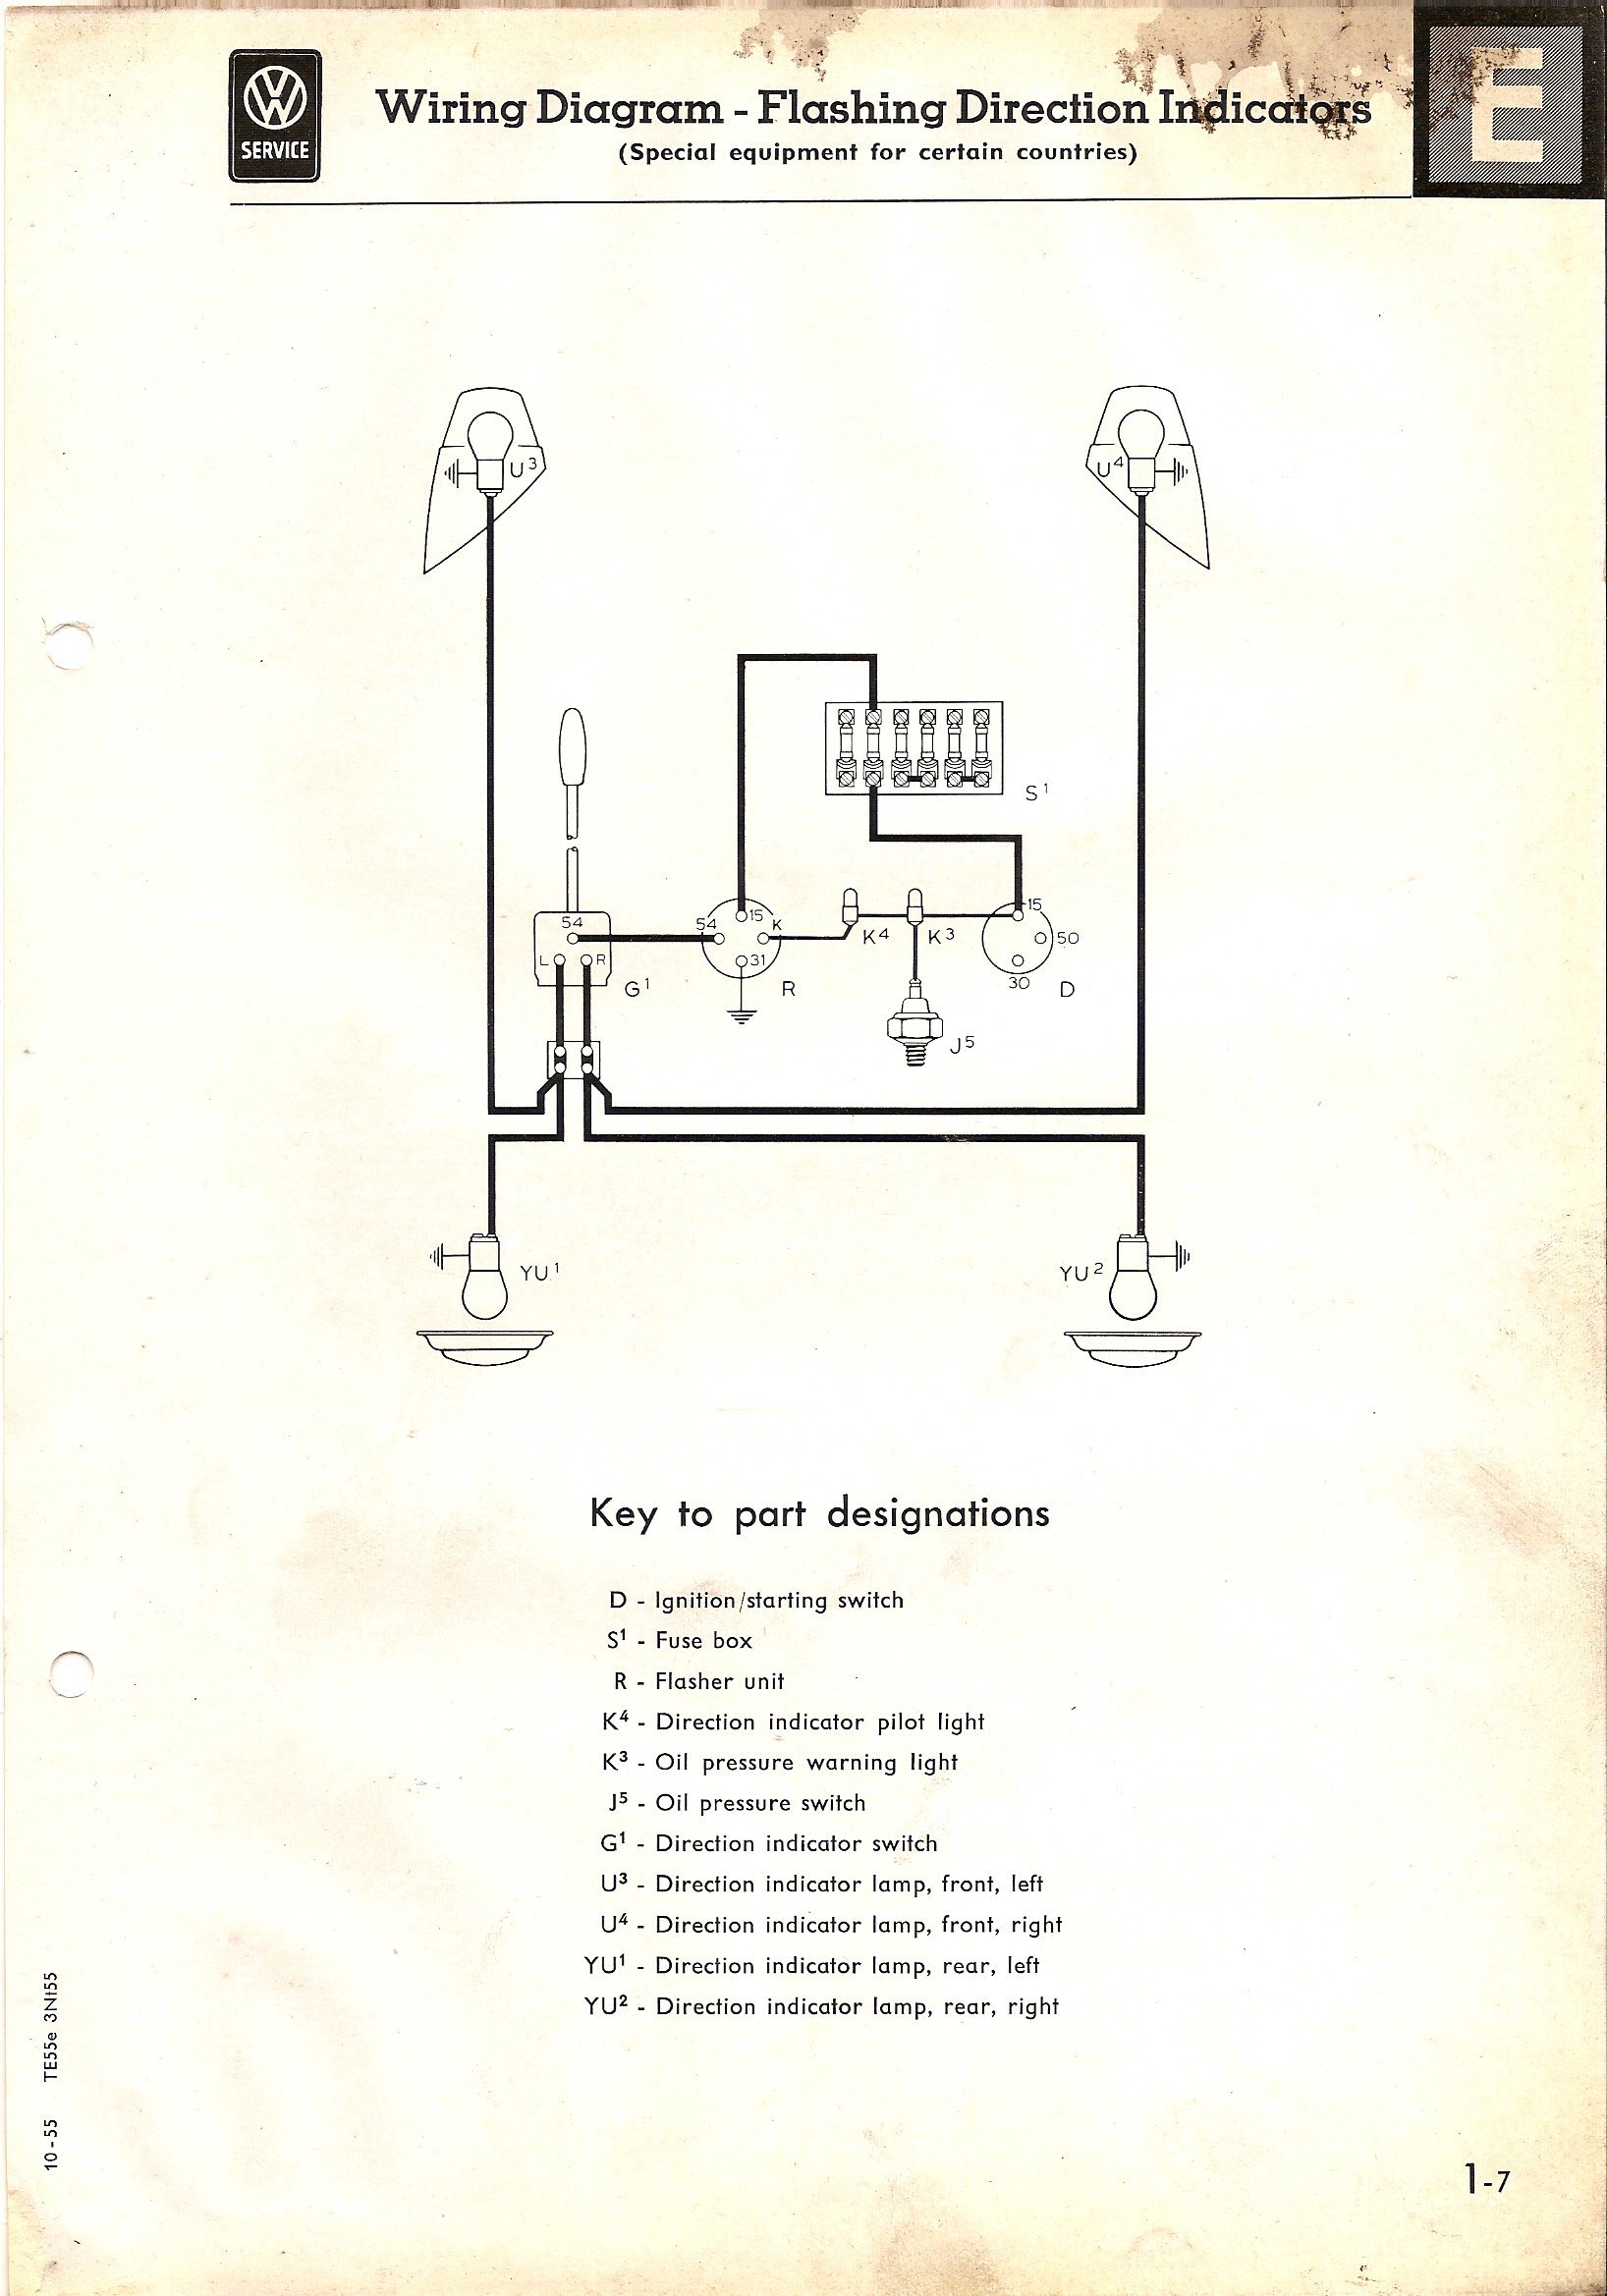 Type 2 Wiring Diagrams Panel From Chevy Tail Light Diagram Lights Fuse To 1975